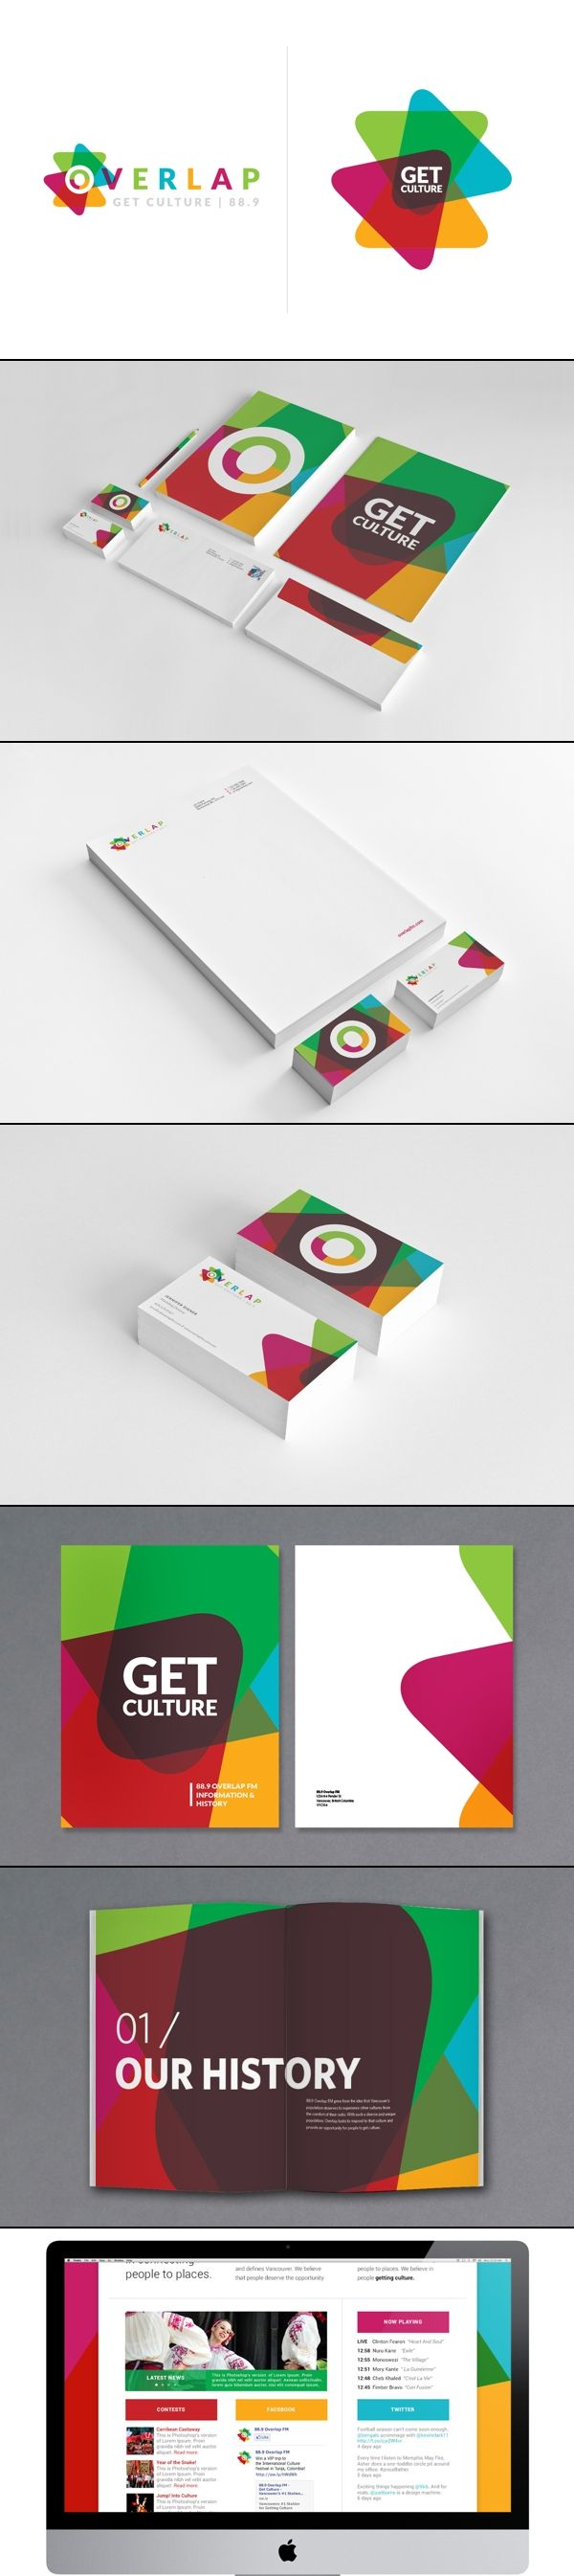 Overlap / Design / Branding | #stationary #corporate #design #corporatedesign #identity #branding #marketing < repinned by www.BlickeDeeler.de | Take a look at www.LogoGestaltung-Hamburg.de